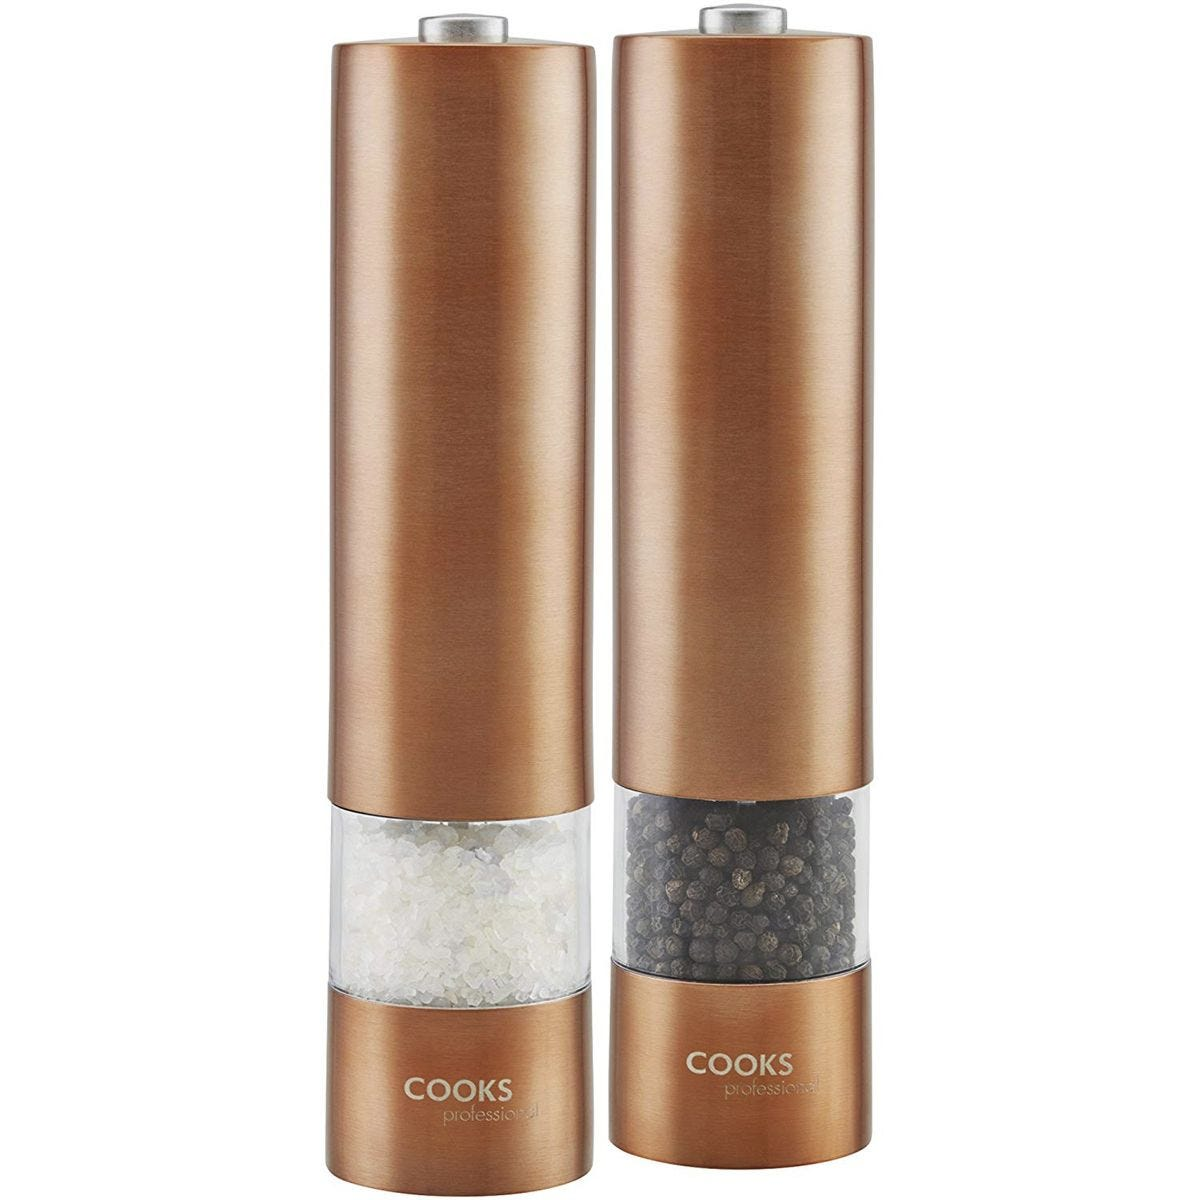 Cooks Professional Electric Salt and Pepper Mill - Rose Gold